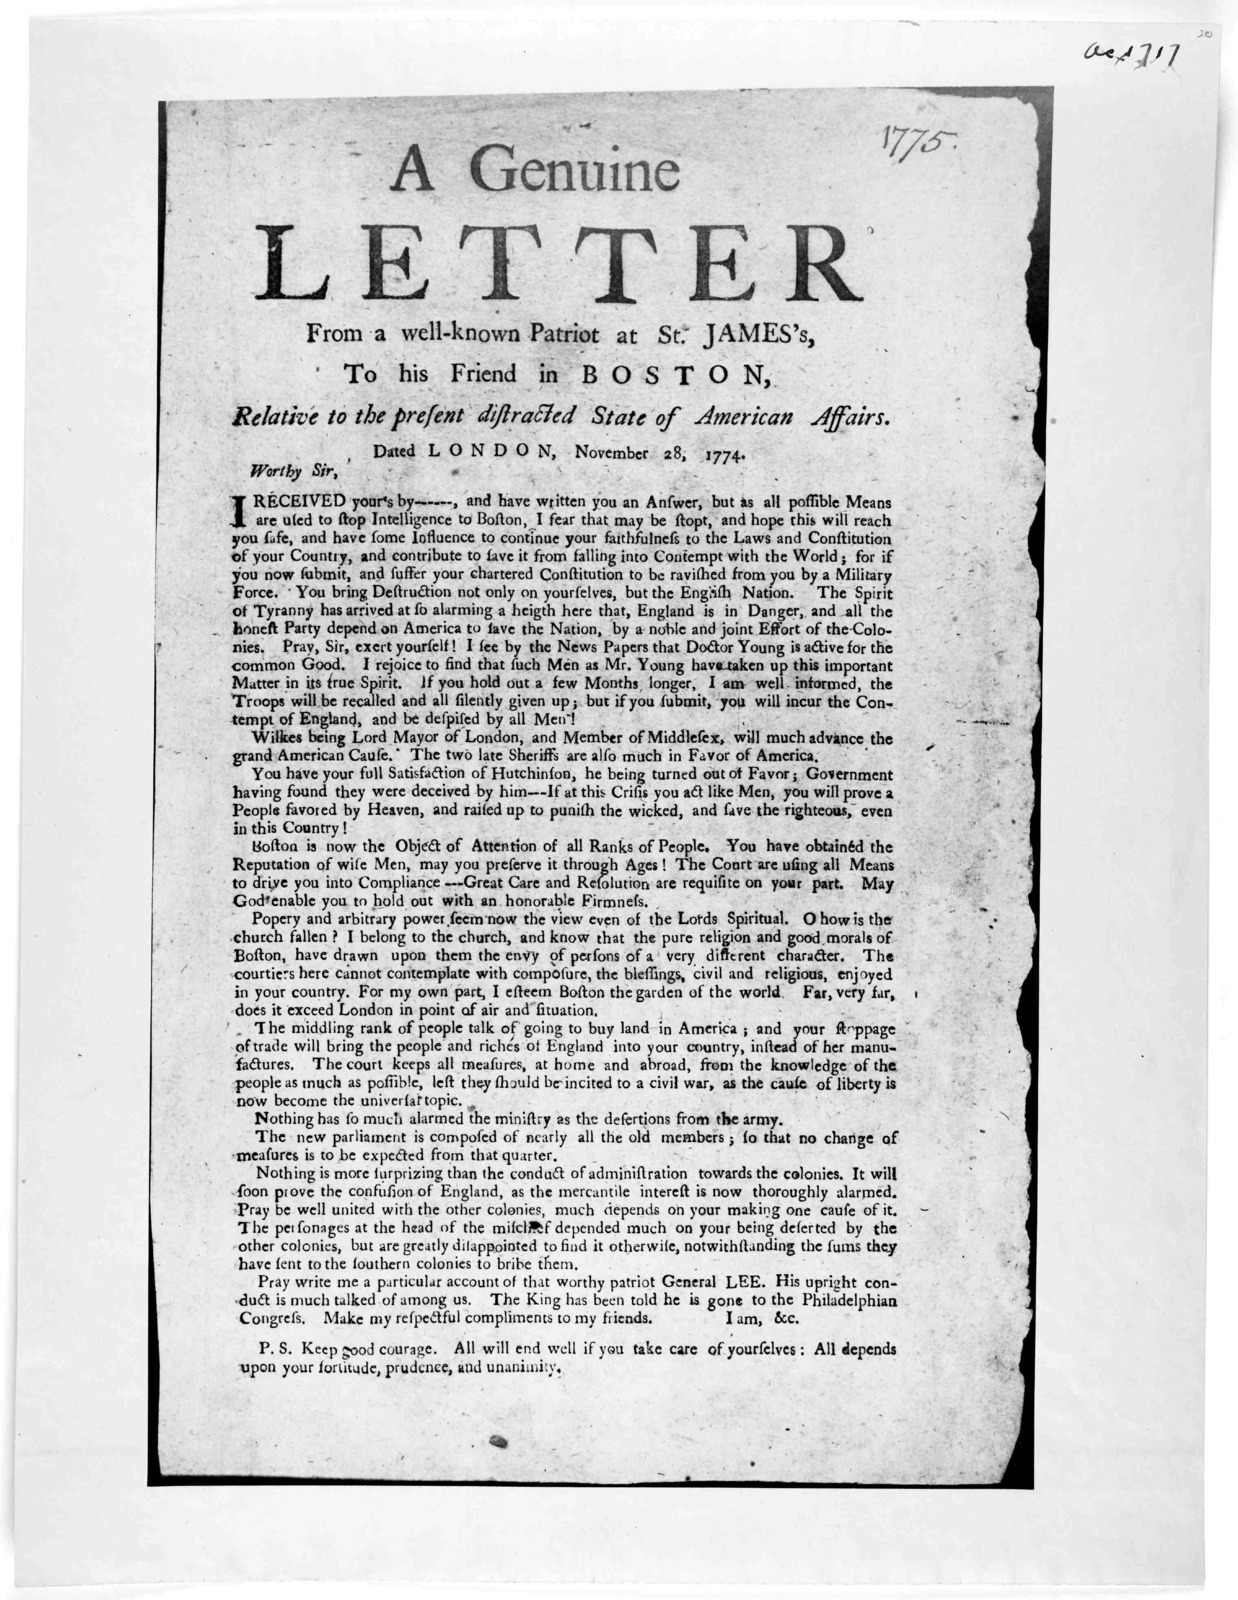 A genuine letter from a well-known patriot at St. James's to his friend in Boston, relative to the present distracted state of American affairs. Dated London, November 28, 1774. [Boston? 1775].